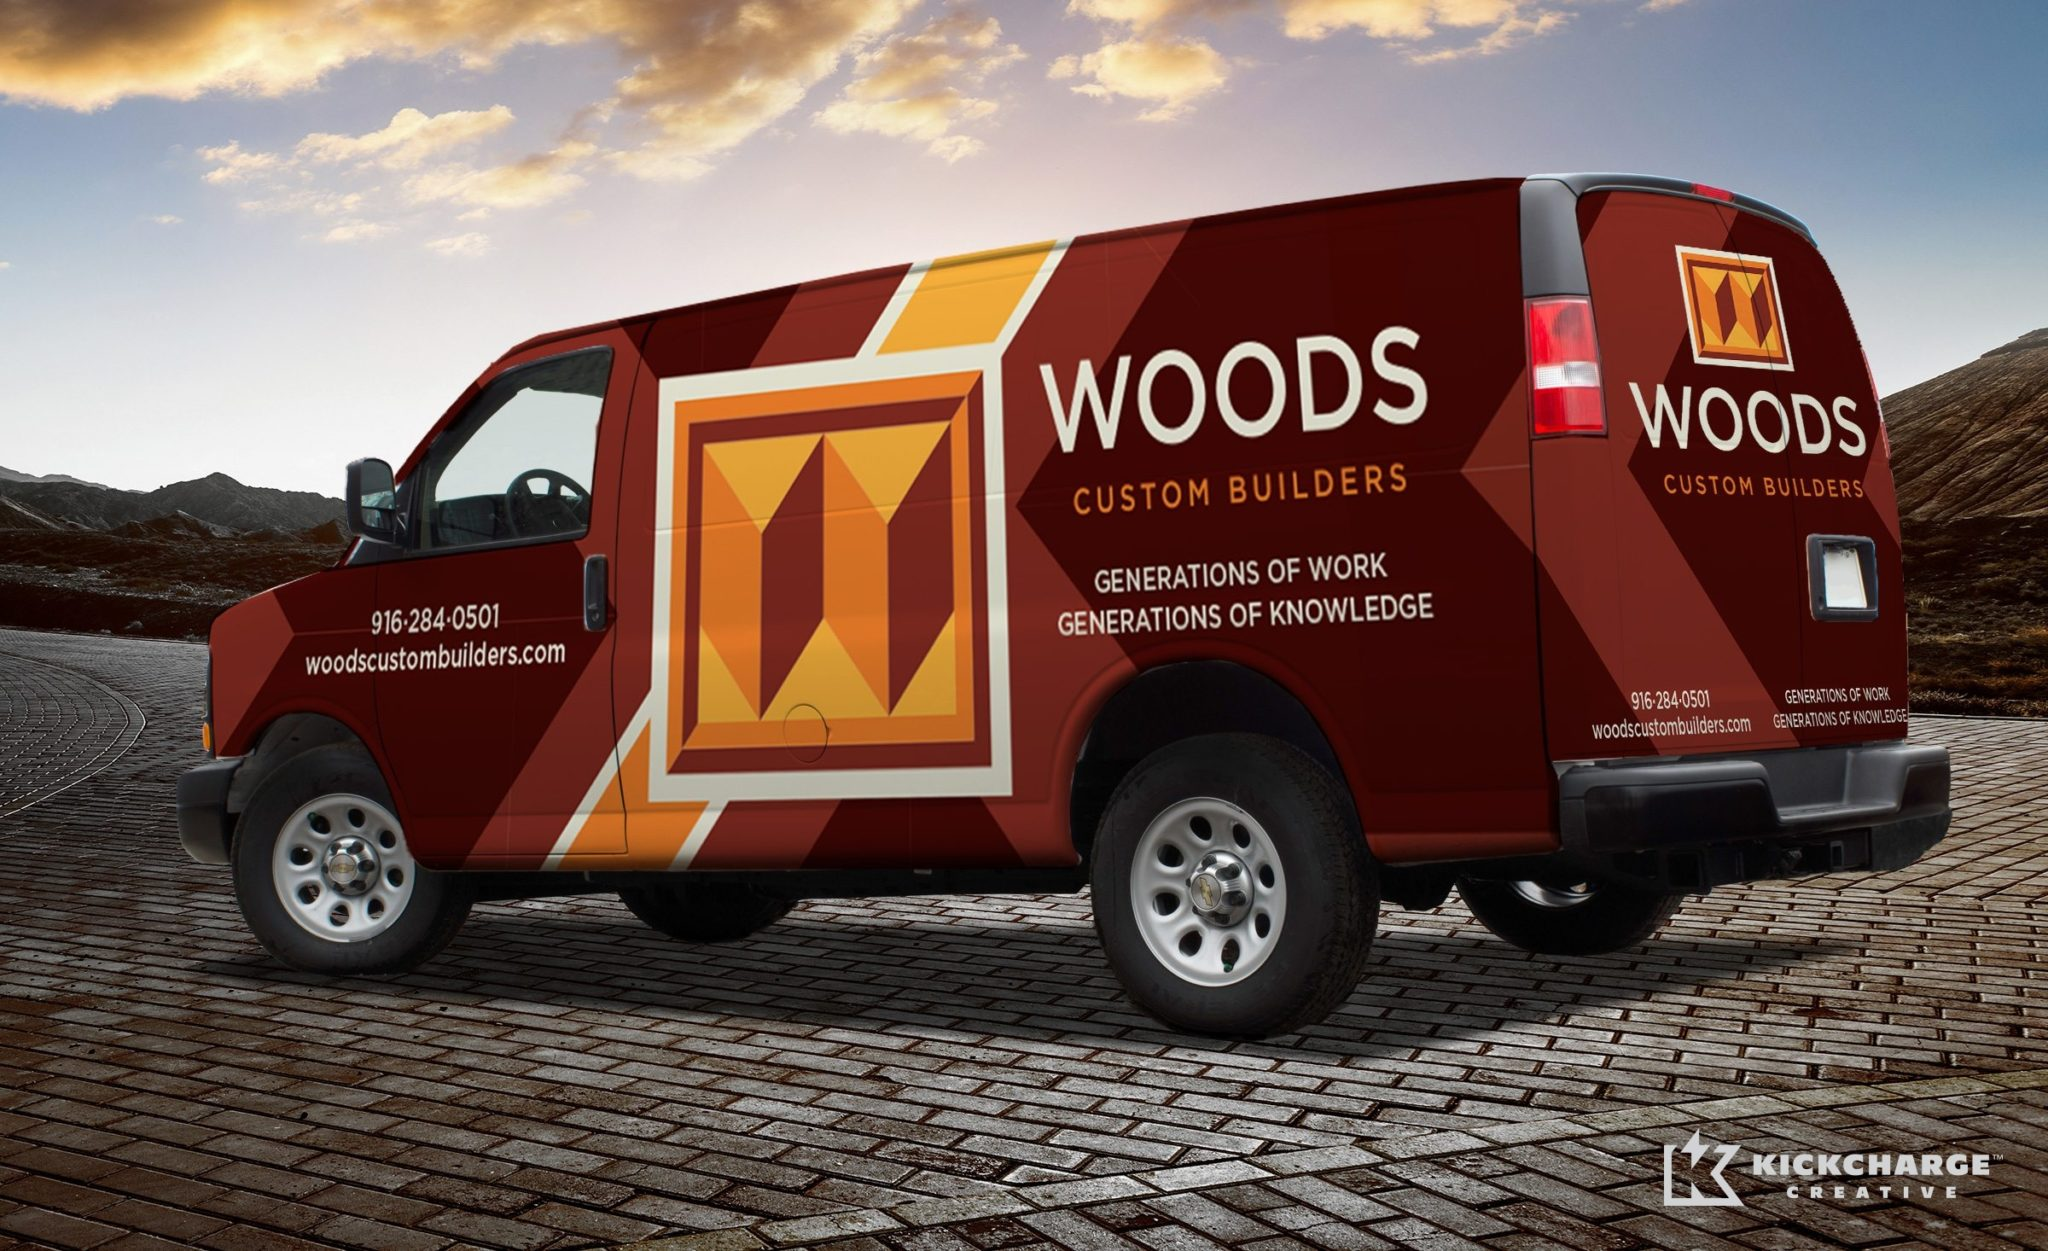 Woods Custom Builders vehicle wrap design for a home improvement company serving Sacramento, California.